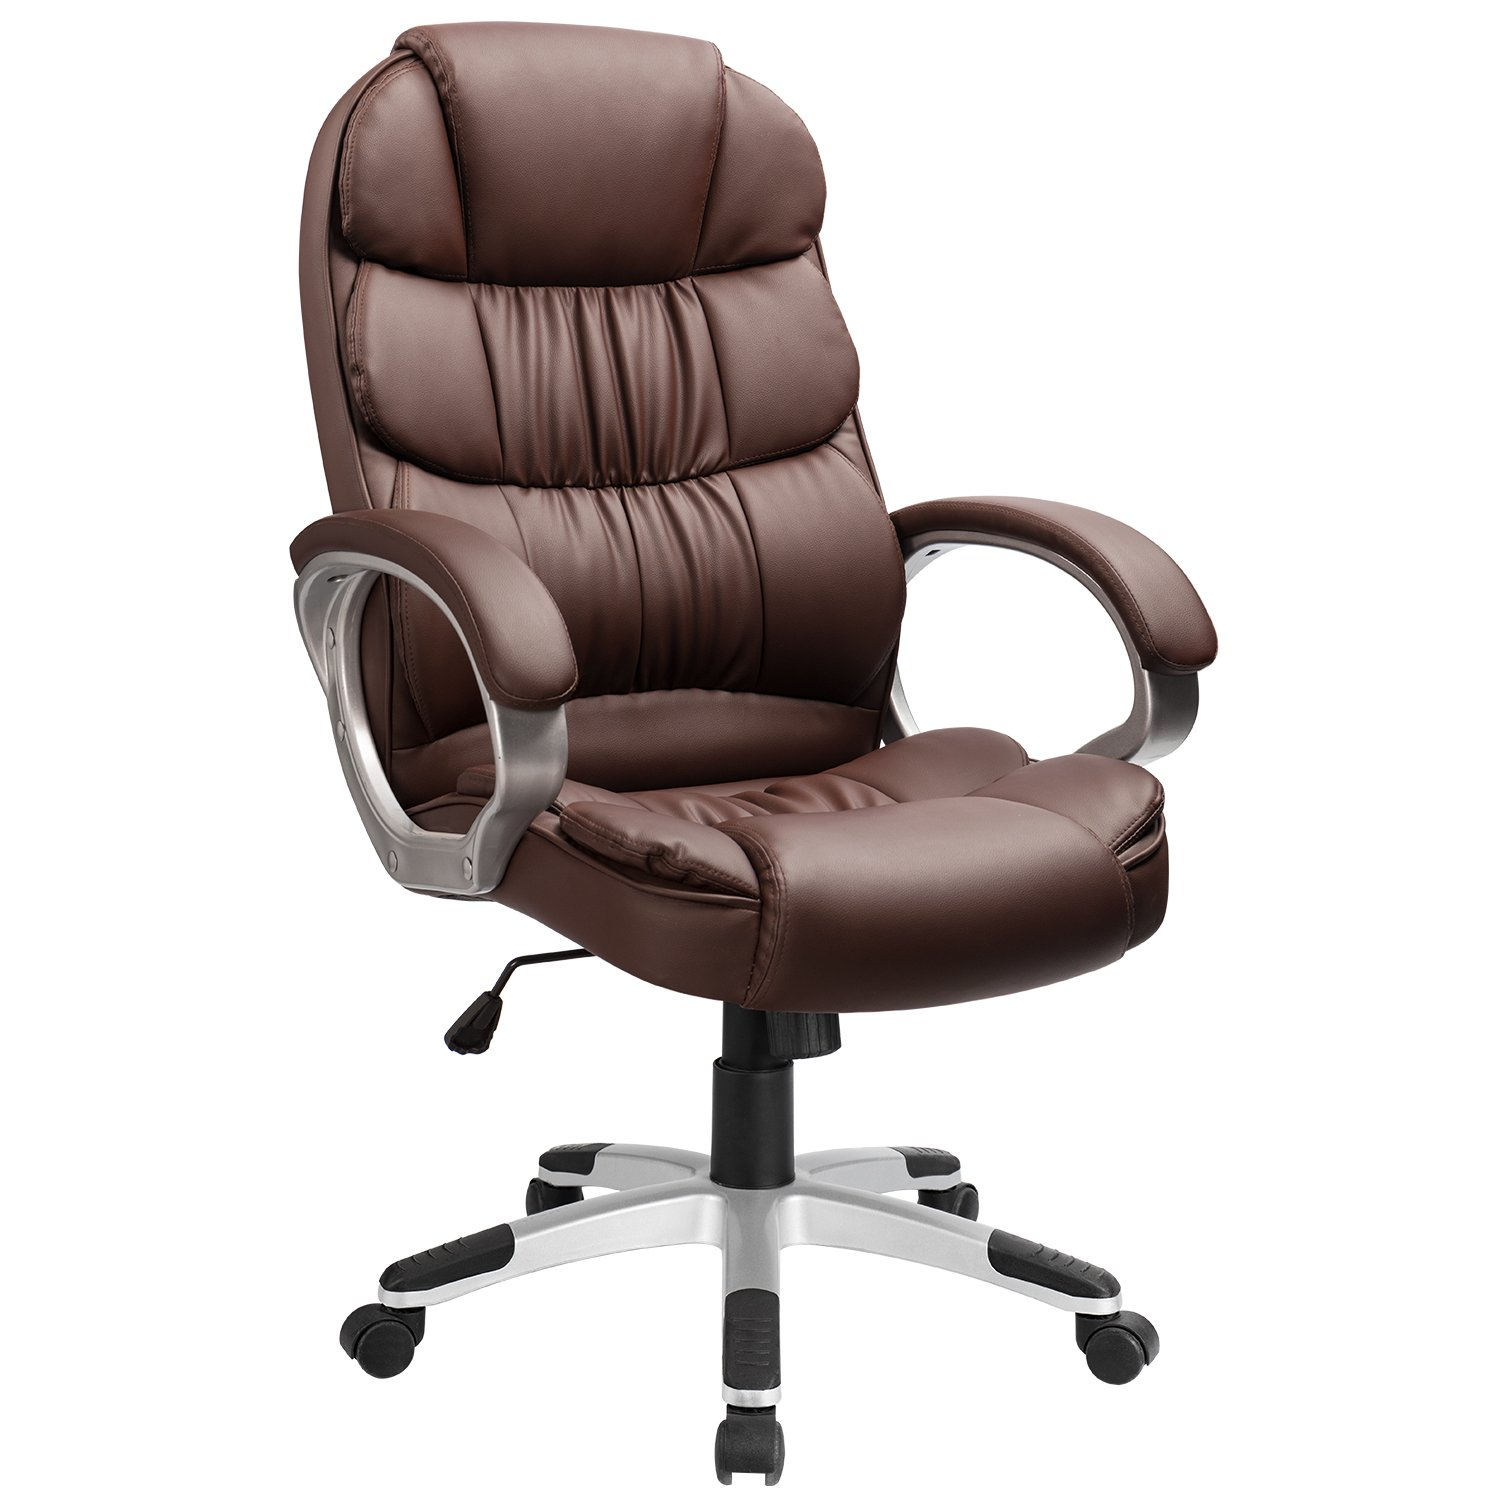 Furmax High Back Office Chair PU Leather Executive Desk Chair with Padded Armrests,Adjustable Ergonomic Swivel Task Chair with Lumbar Support (Brown) by Furmax